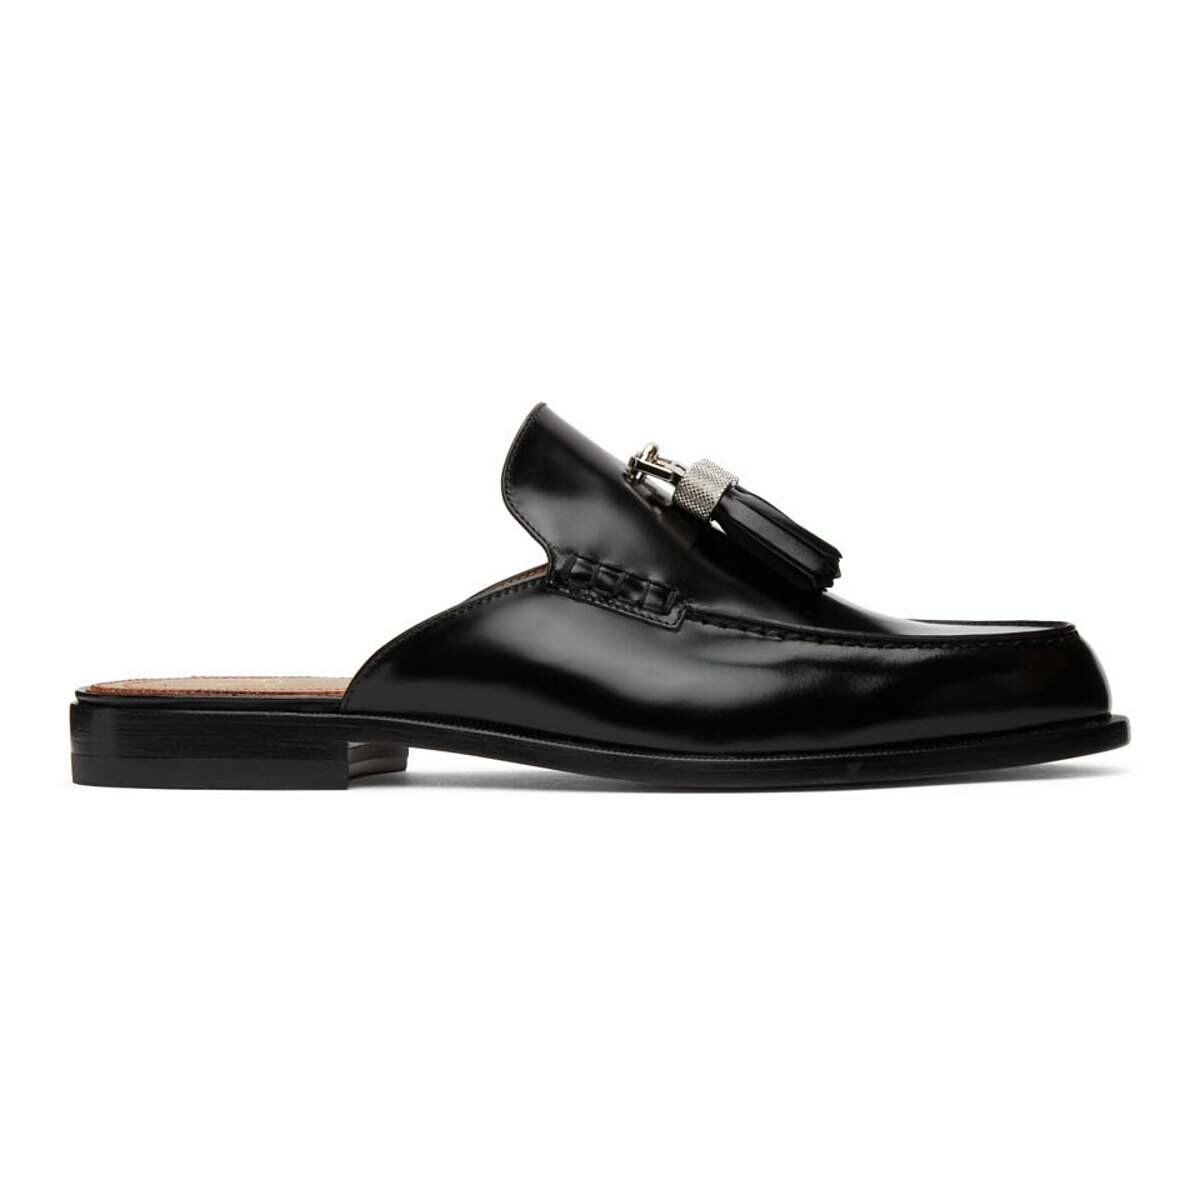 Christian Louboutin Black Rivaslide Loafers Ssense USA MEN Men SHOES Mens LOAFERS